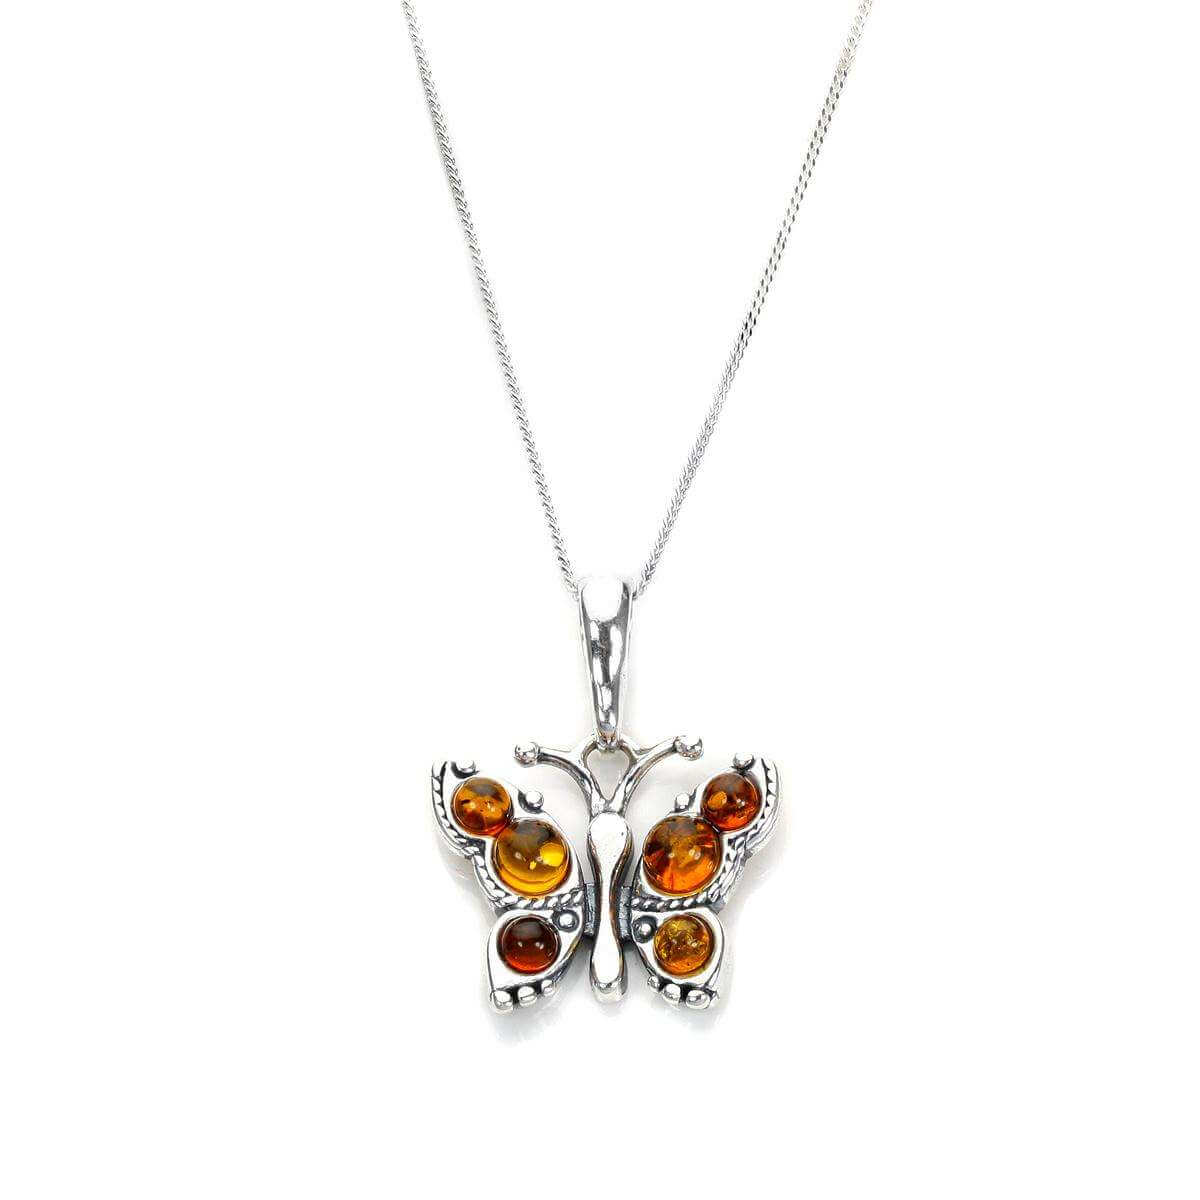 Small Sterling Silver & Baltic Amber Butterfly Pendant